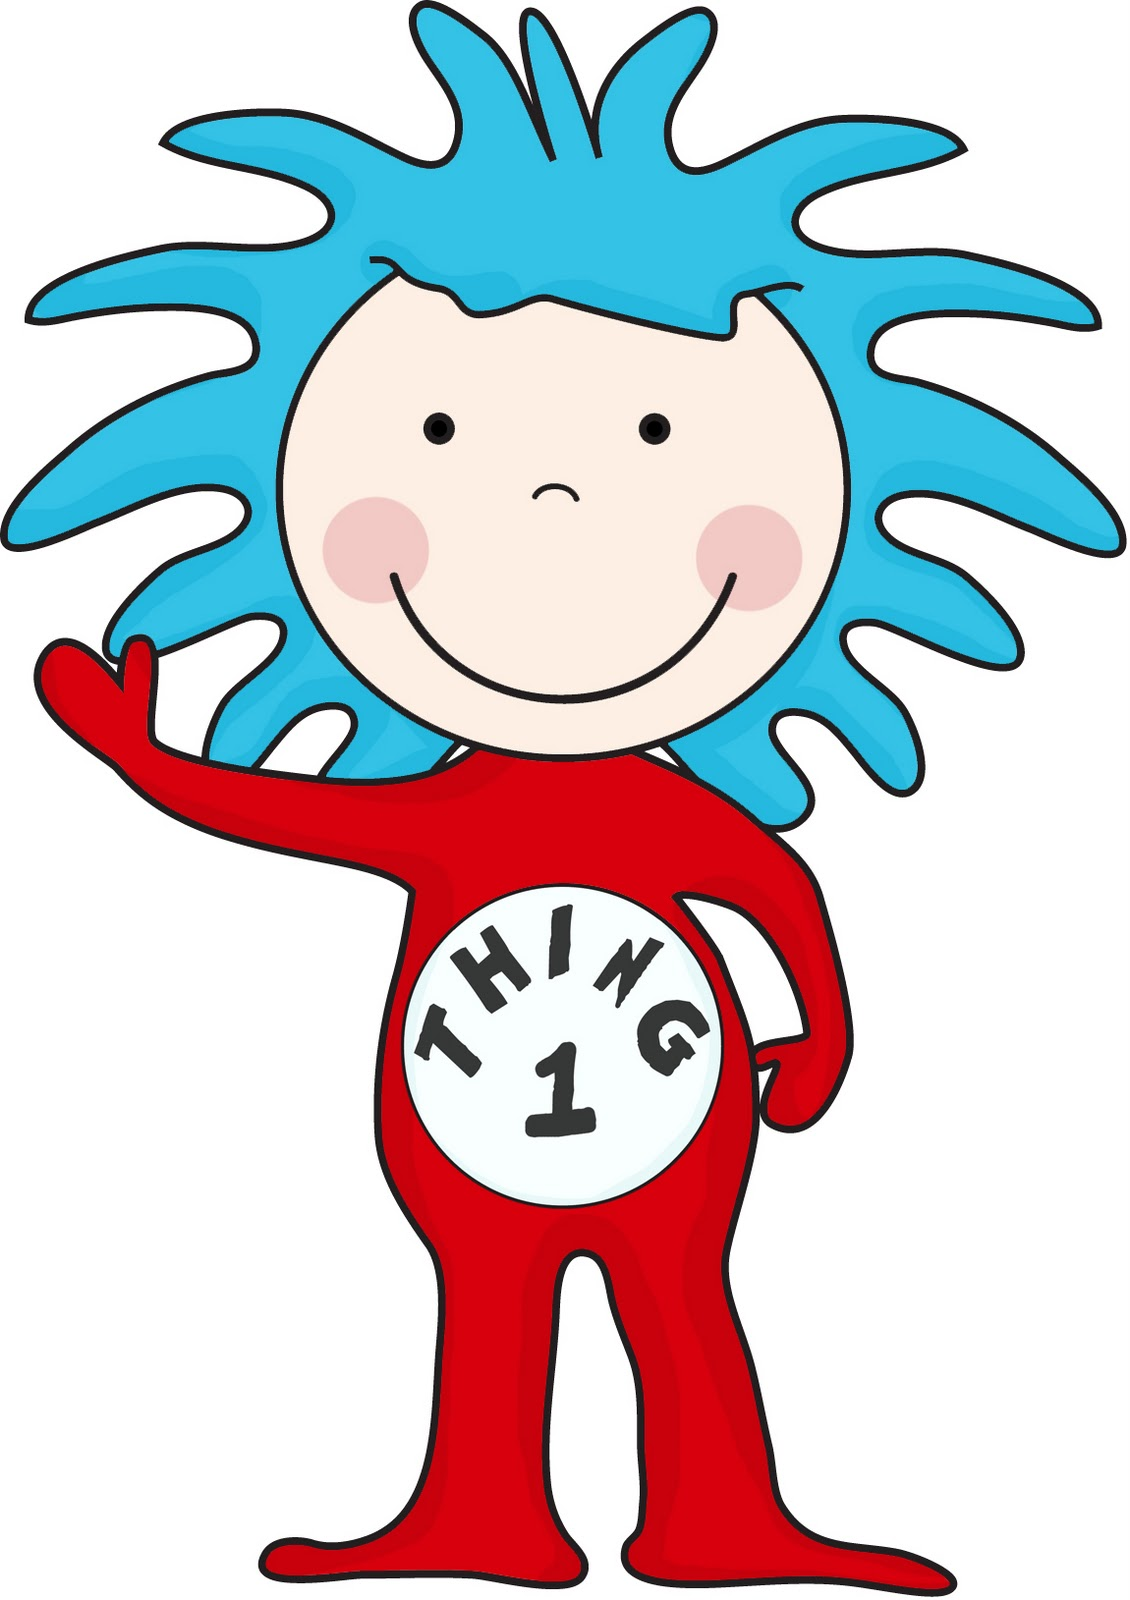 1130x1600 Images For Cat In The Hat Thing 1 And 2 Clip Art Clipart 3